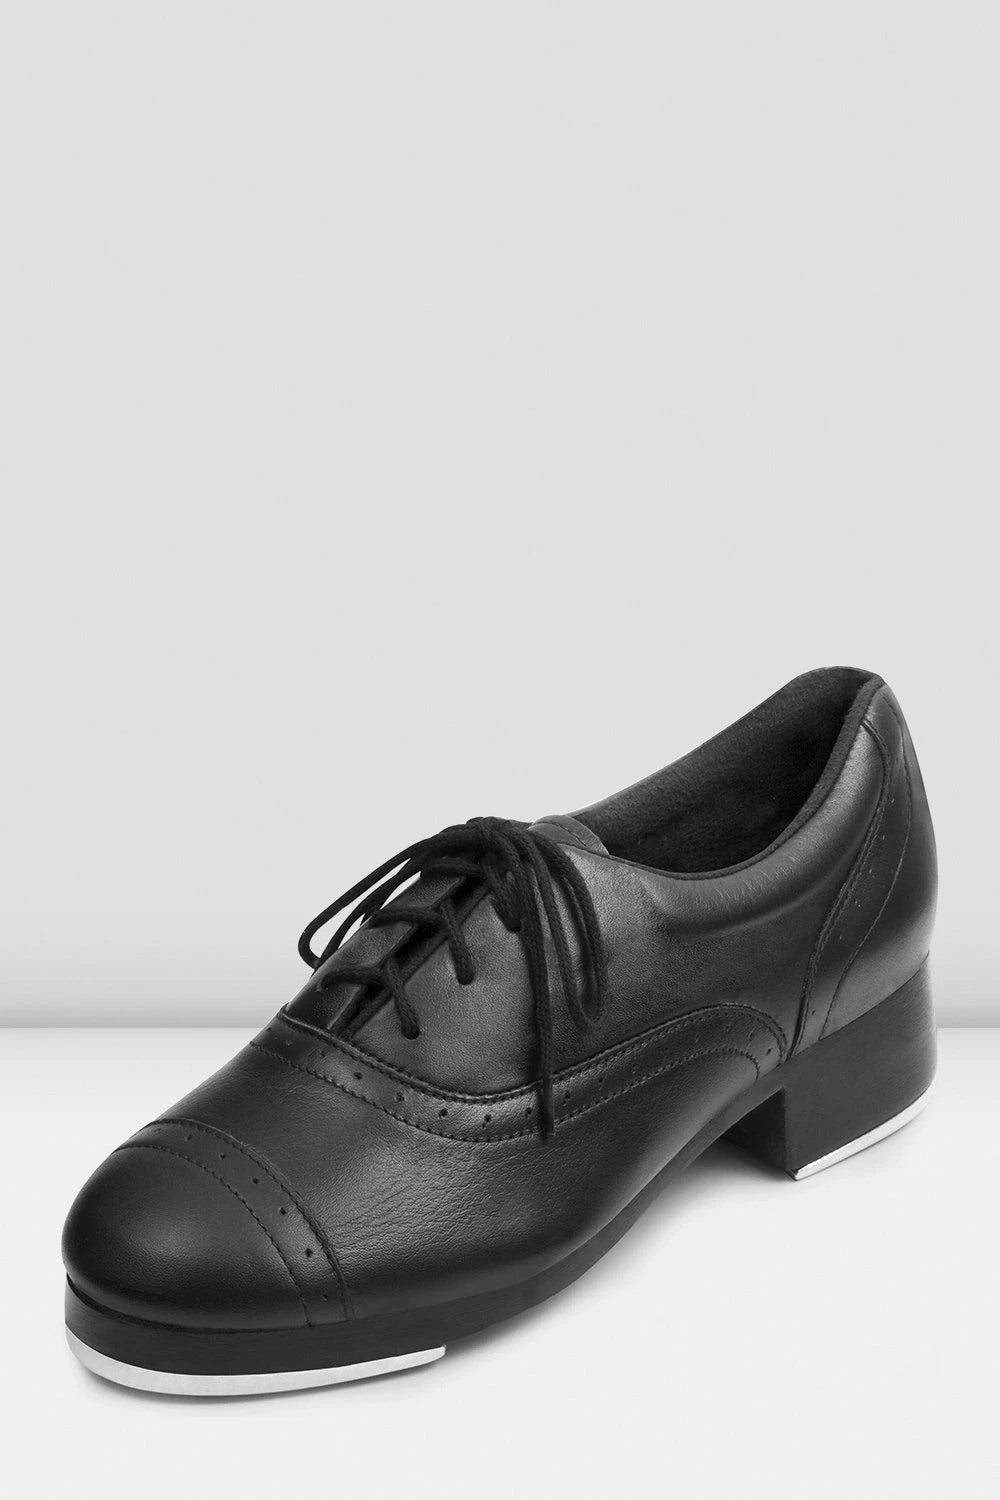 BLOCH  - SO313L - Jason Samuel Smith Tap Shoe Leather  - Ladies